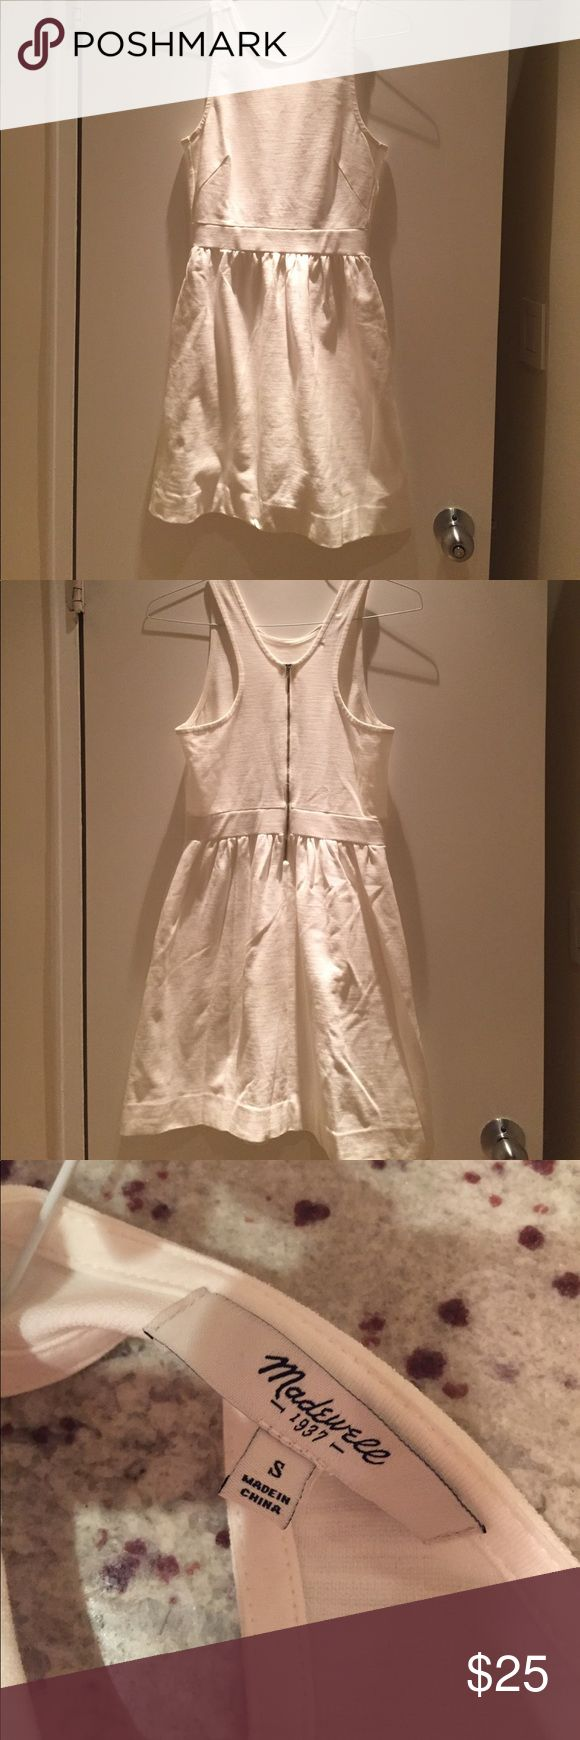 White Madewell Afternoon dress White Madewell Afternoon dress. Zipper in back, racer back. Worn a few times and had pockets. Looks really wrinkly but I ironed it (the lighting in my room is really bad!) Madewell Dresses Mini